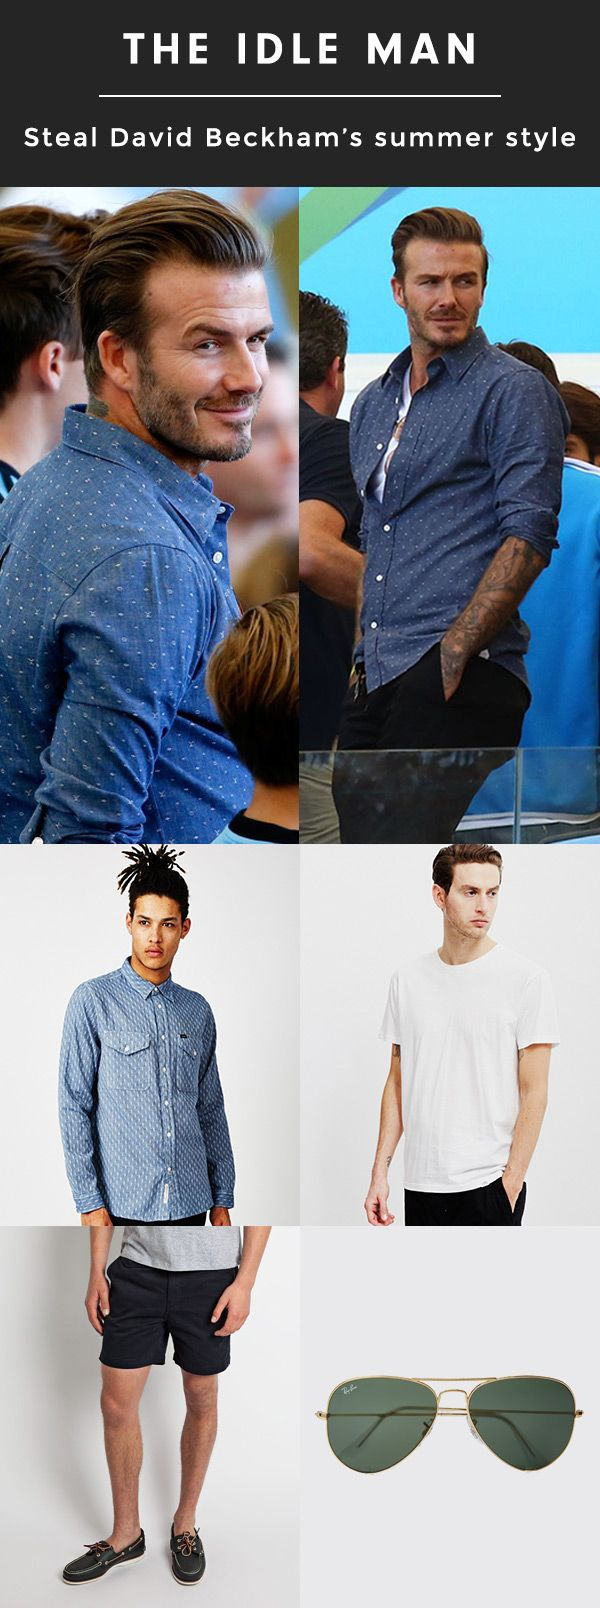 Click to shop David Beckham's look for an effortlessly cool summer style. Layer a blue shirt over a simple white t-shirt, throw on some black chino shorts and add a pair of Ray Bans Aviators to finish this chilled out look. http://theidleman.com/inspiration/pinterest-grid-6.html